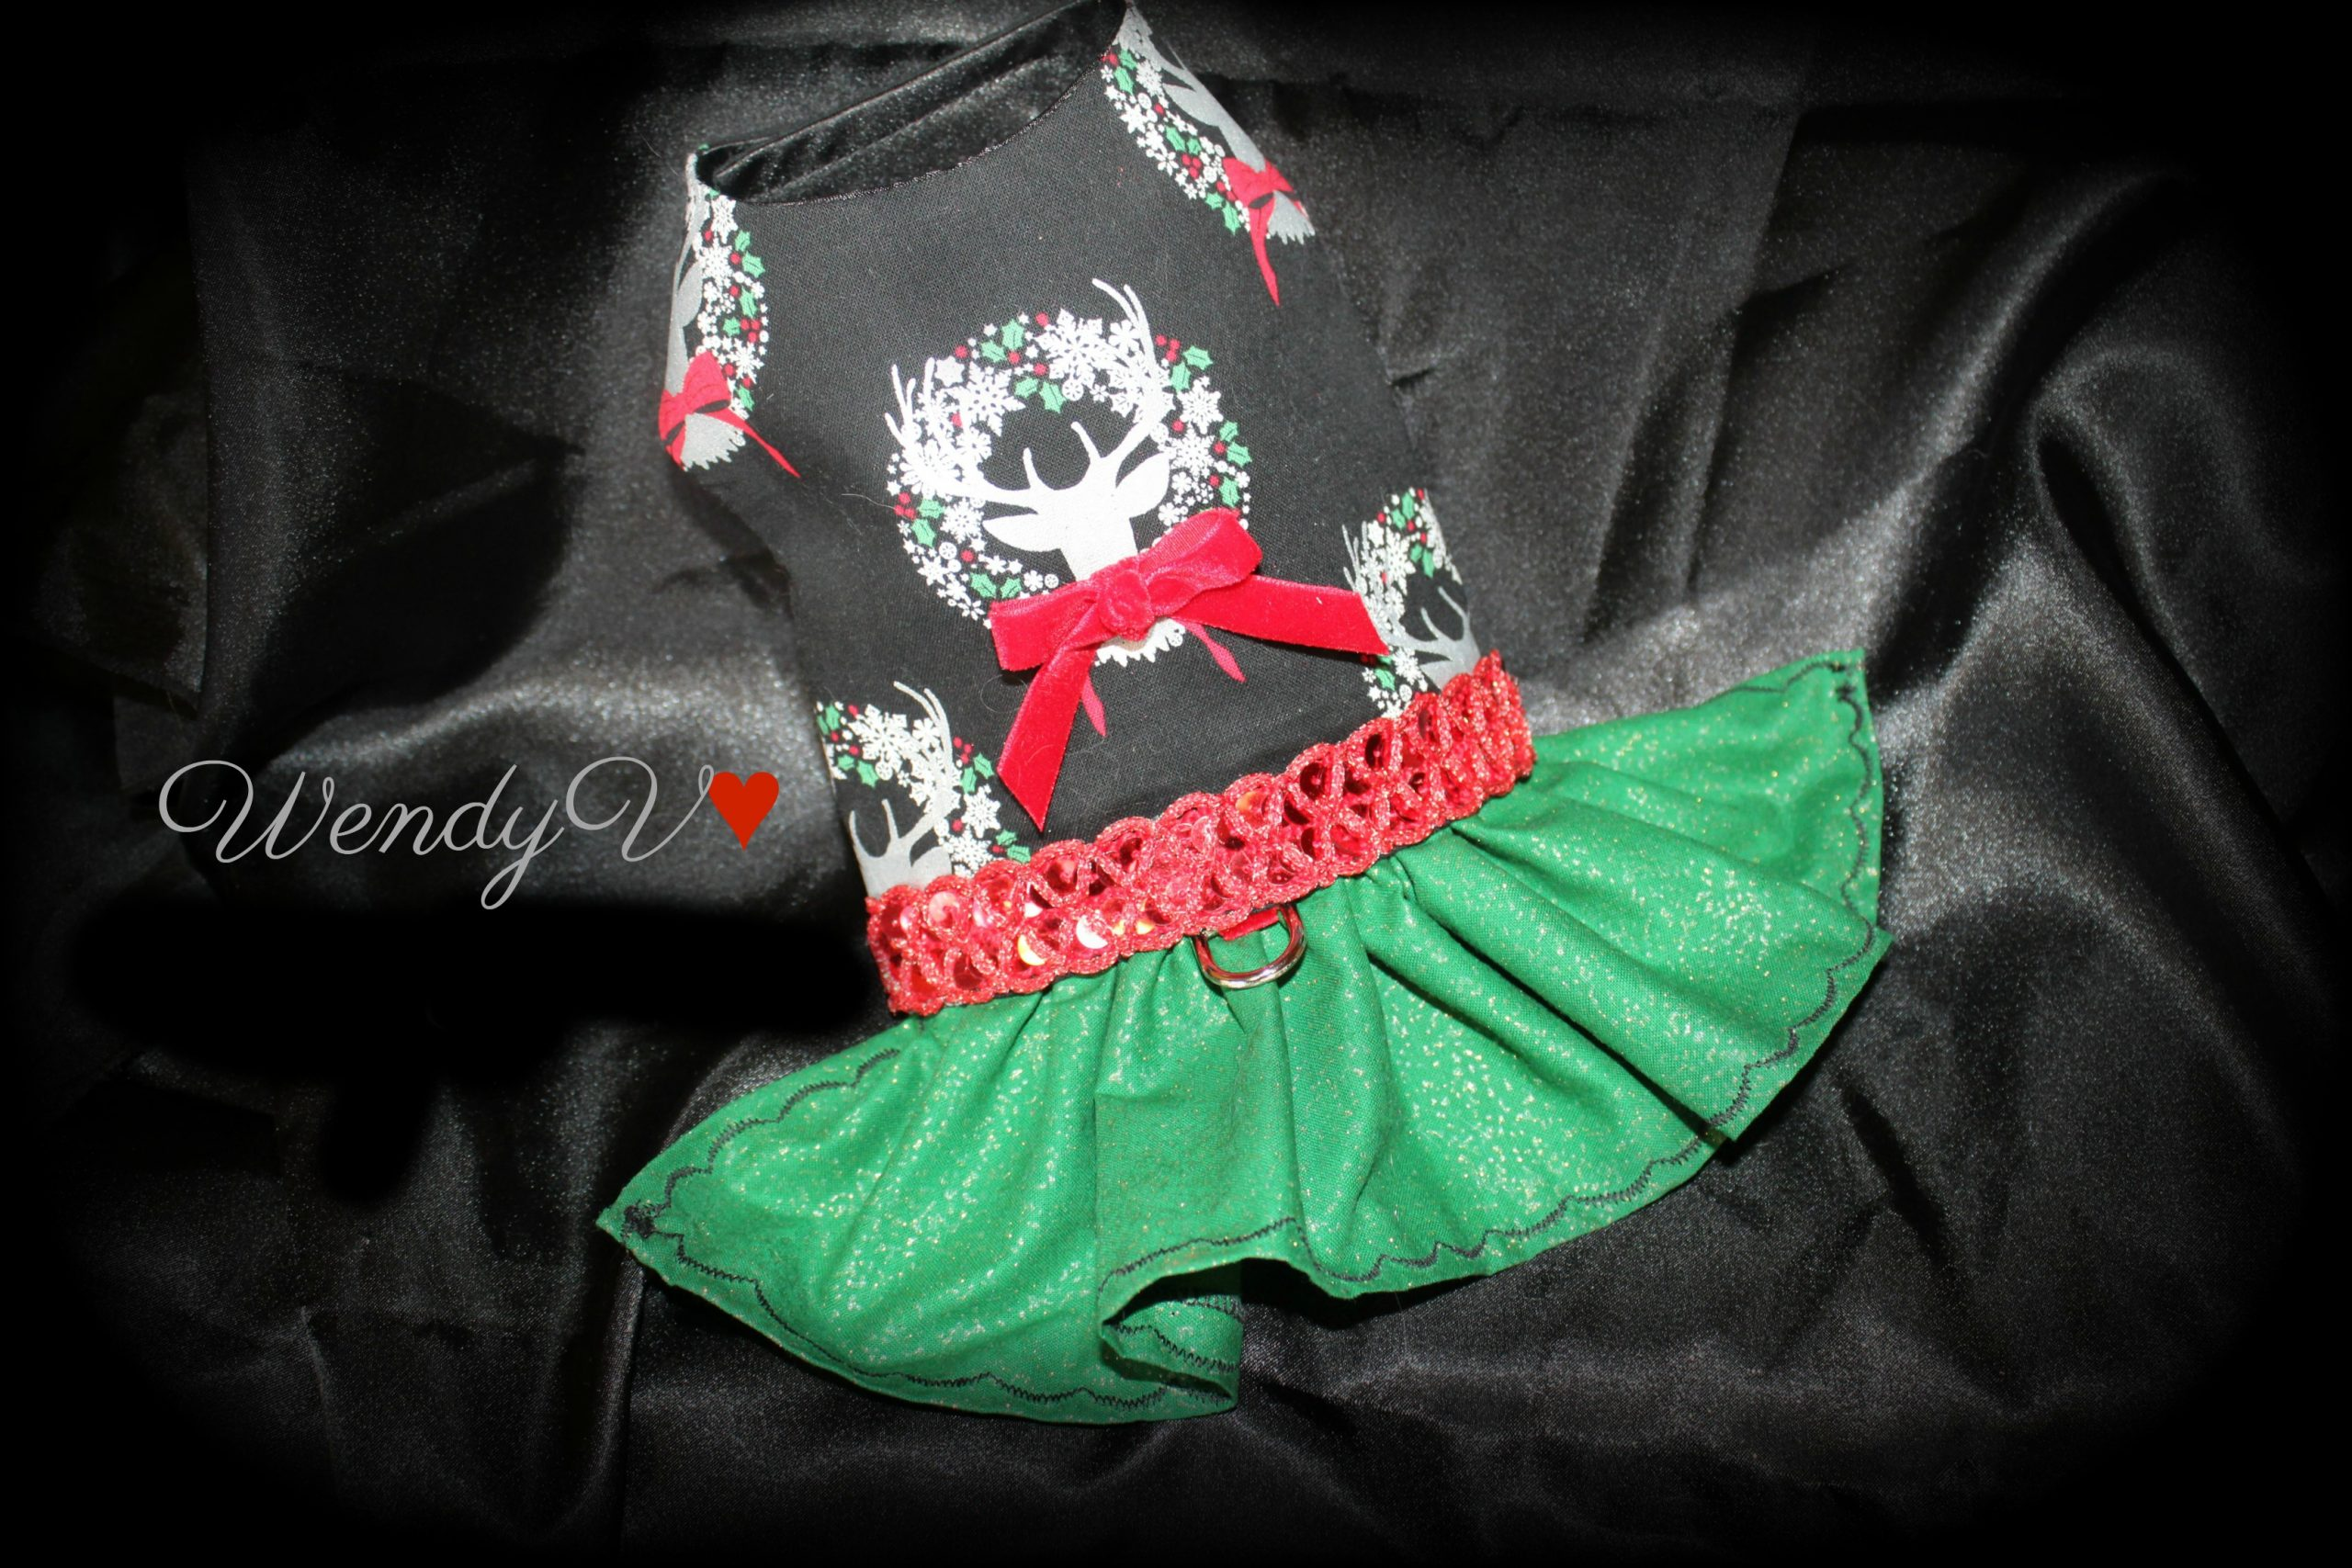 Christmas dog dress, Yorkie dress, WendysYorkies.com, Coco's Closet